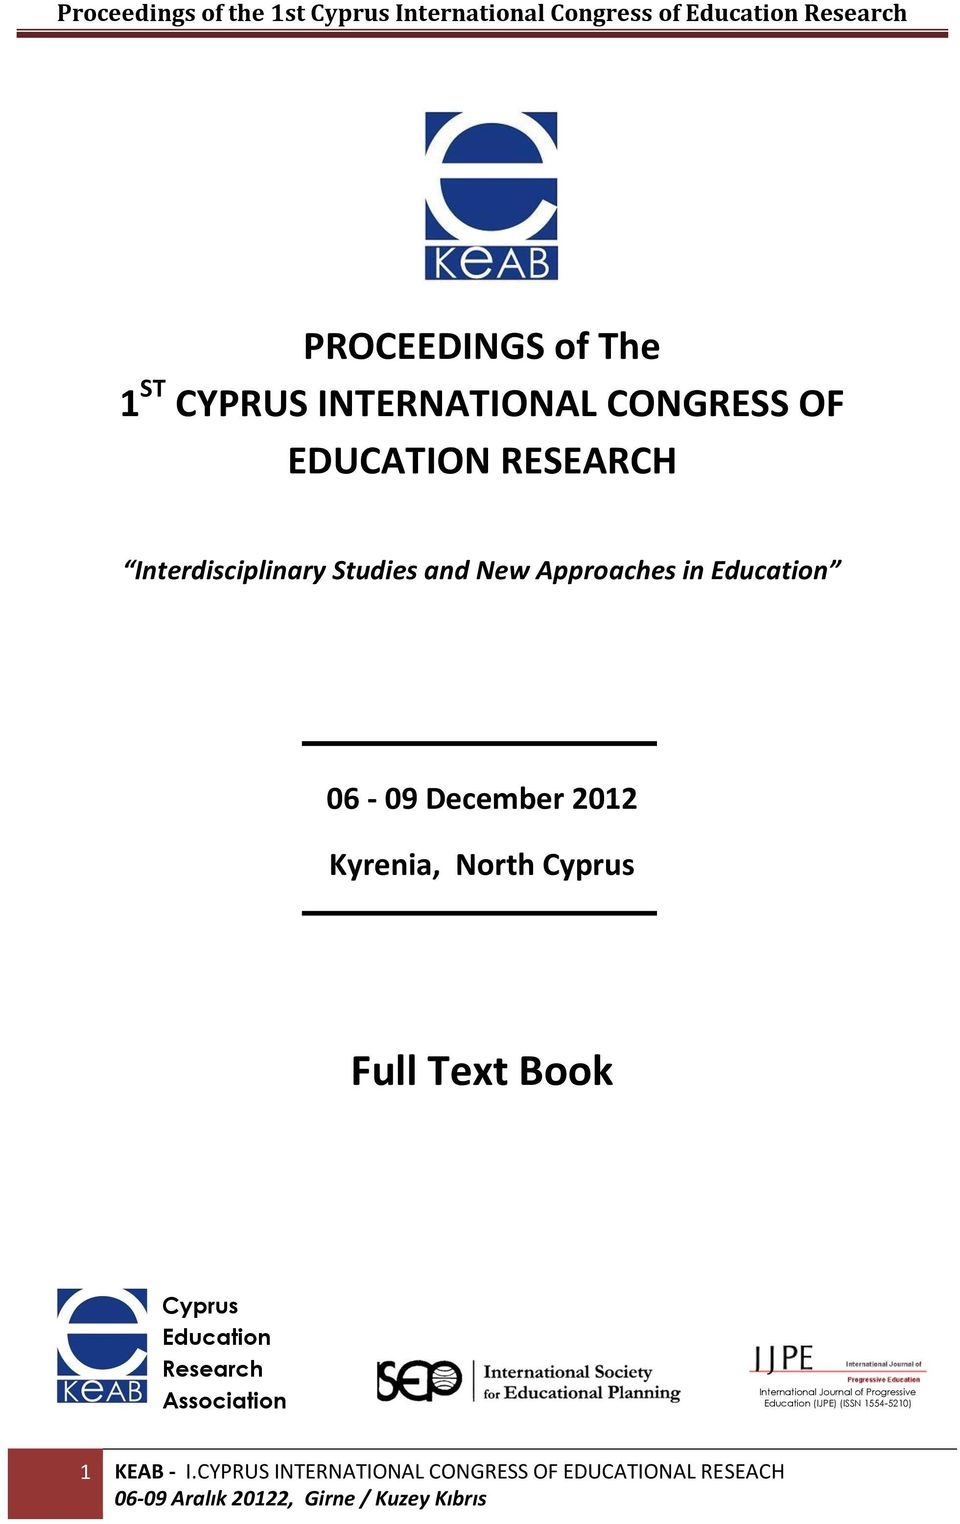 Cyprus Education Research Association International Journal of Progressive Education (IJPE) (ISSN